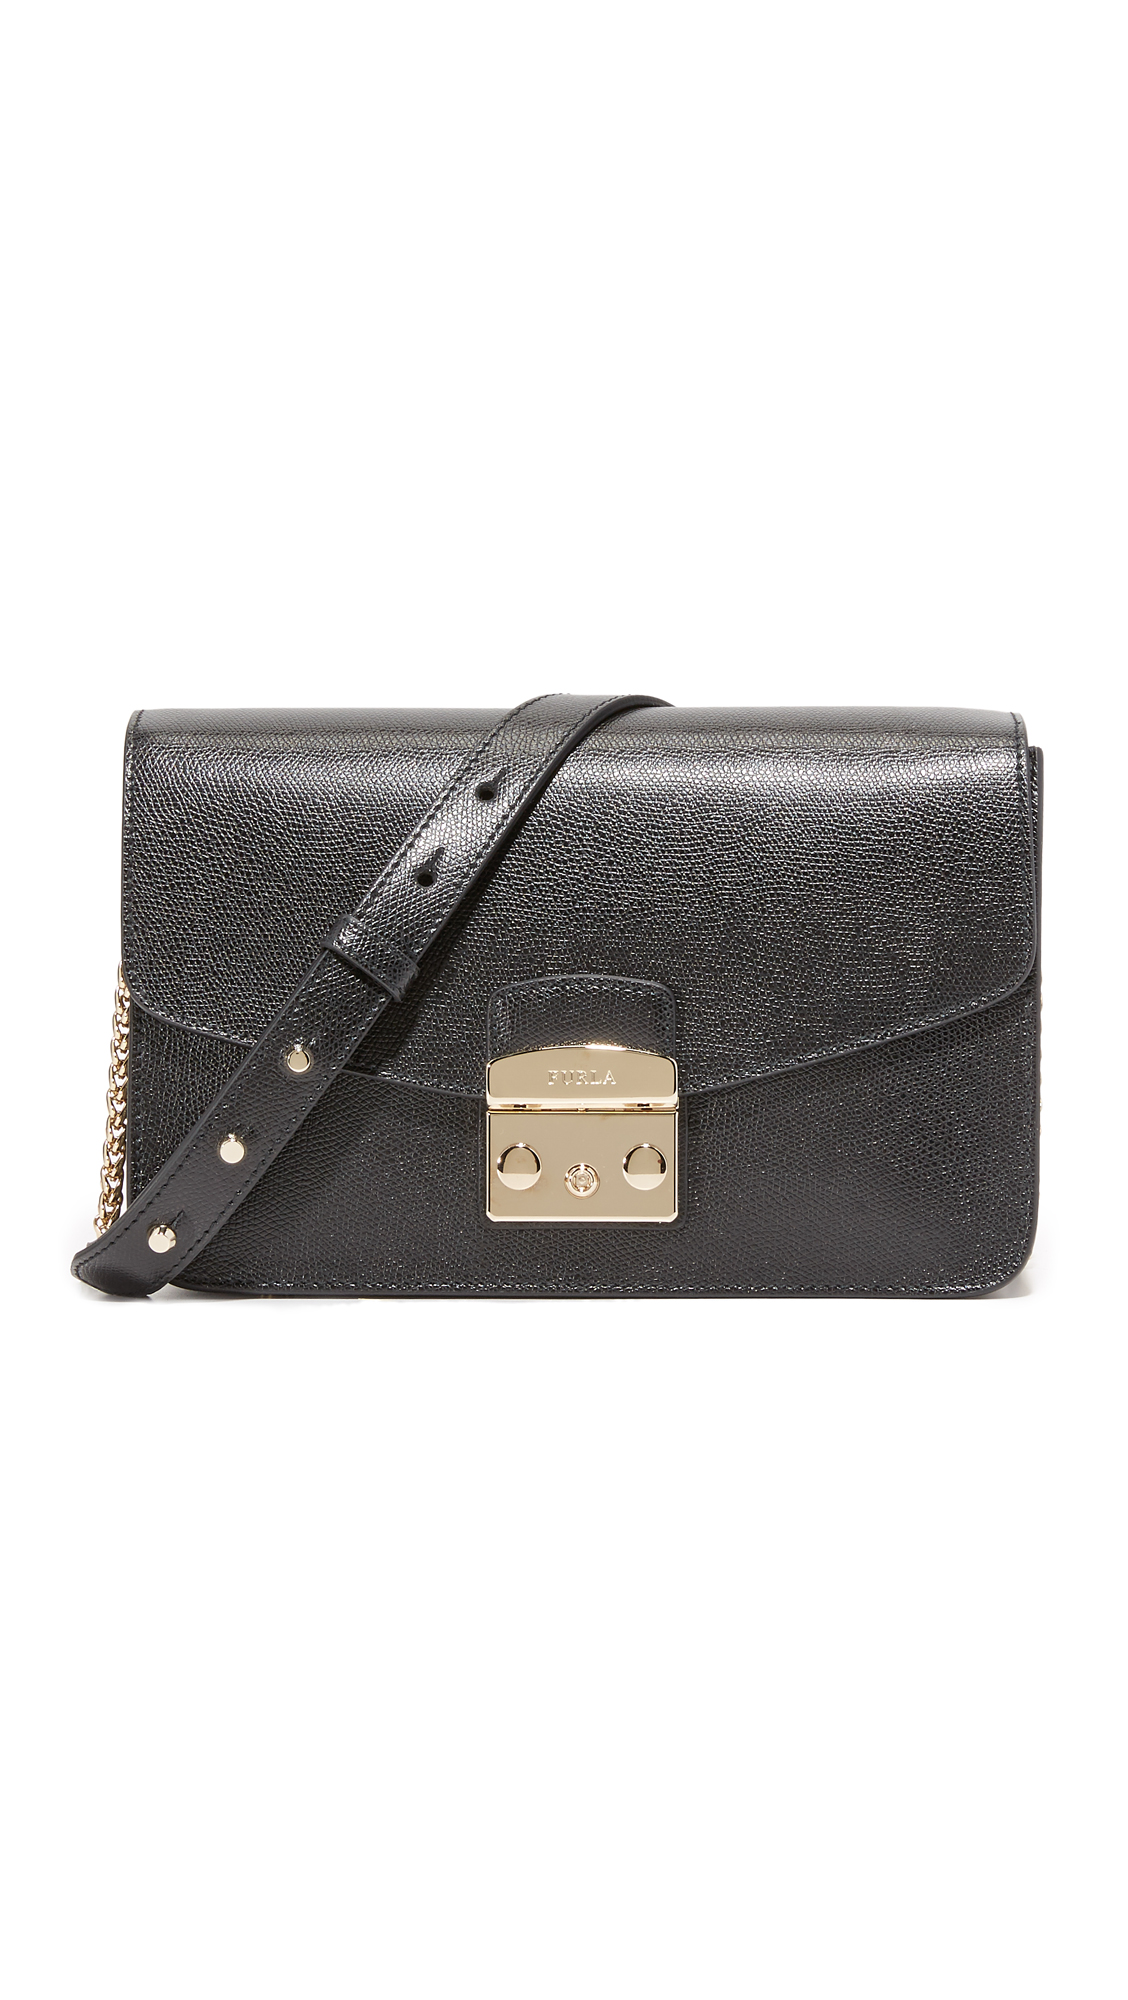 Furla Shopbop Extra 30 Off Sale Styles Use Code Joy18 Dome Small Onyx Authentic